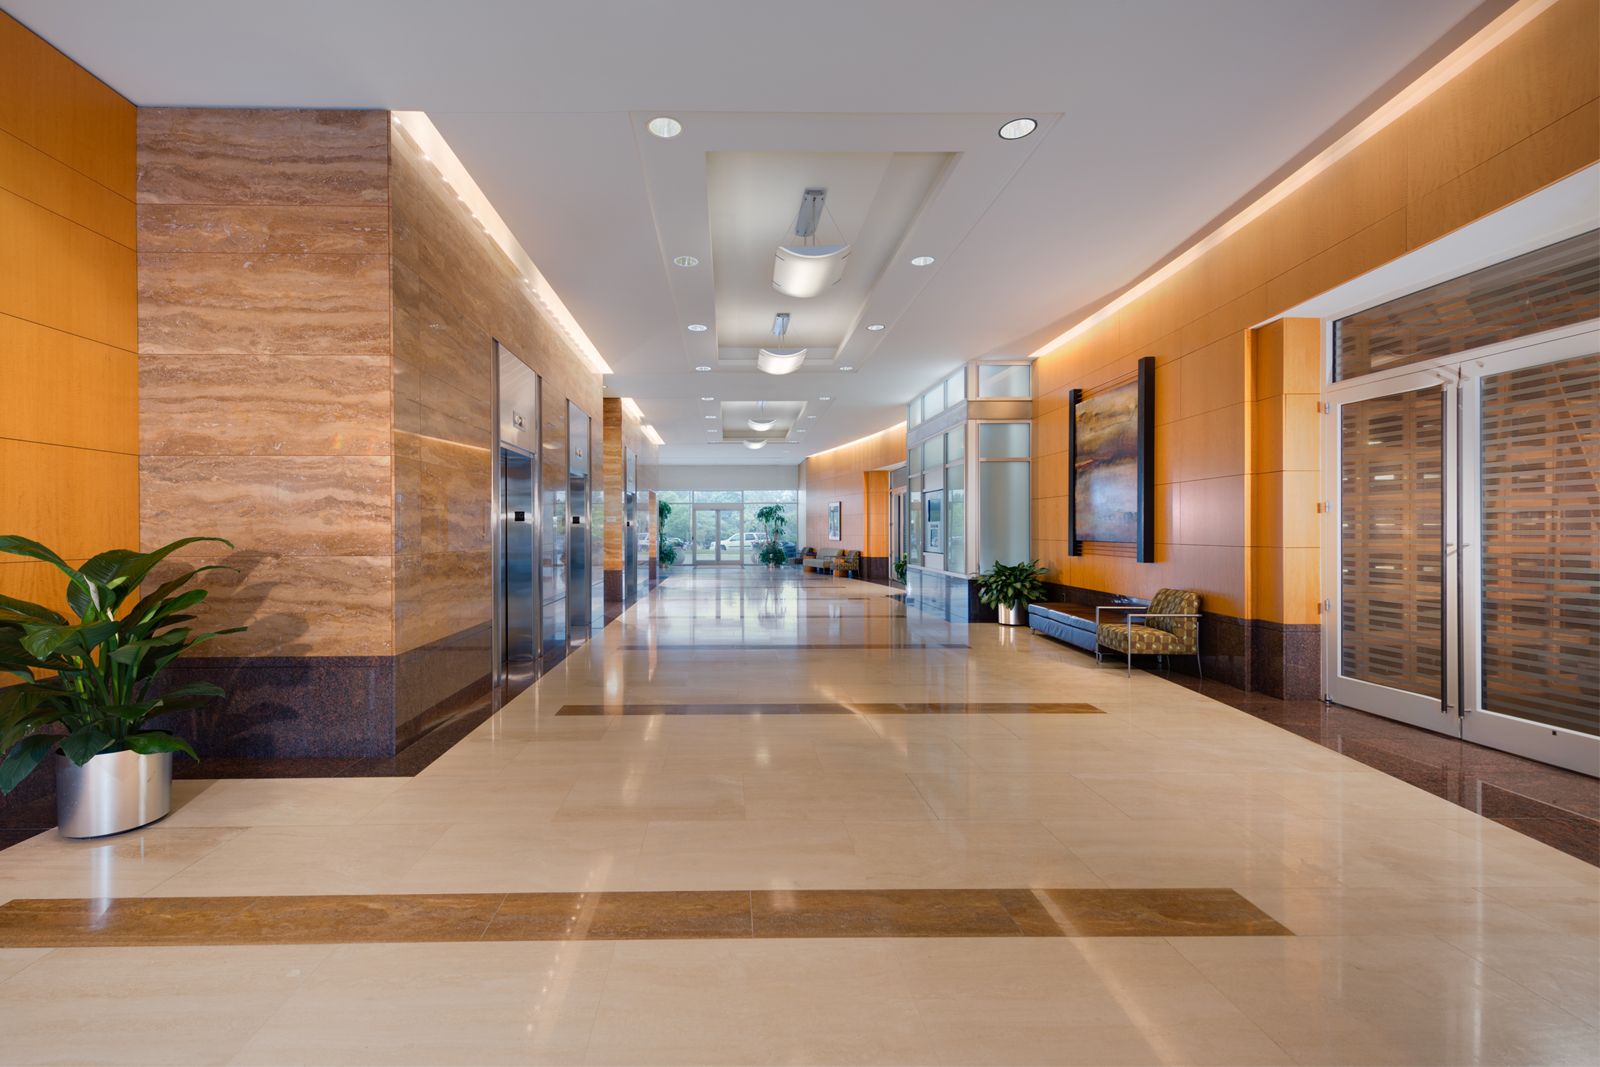 The lobby is the space at the entrance to the building. Synonymous names 93